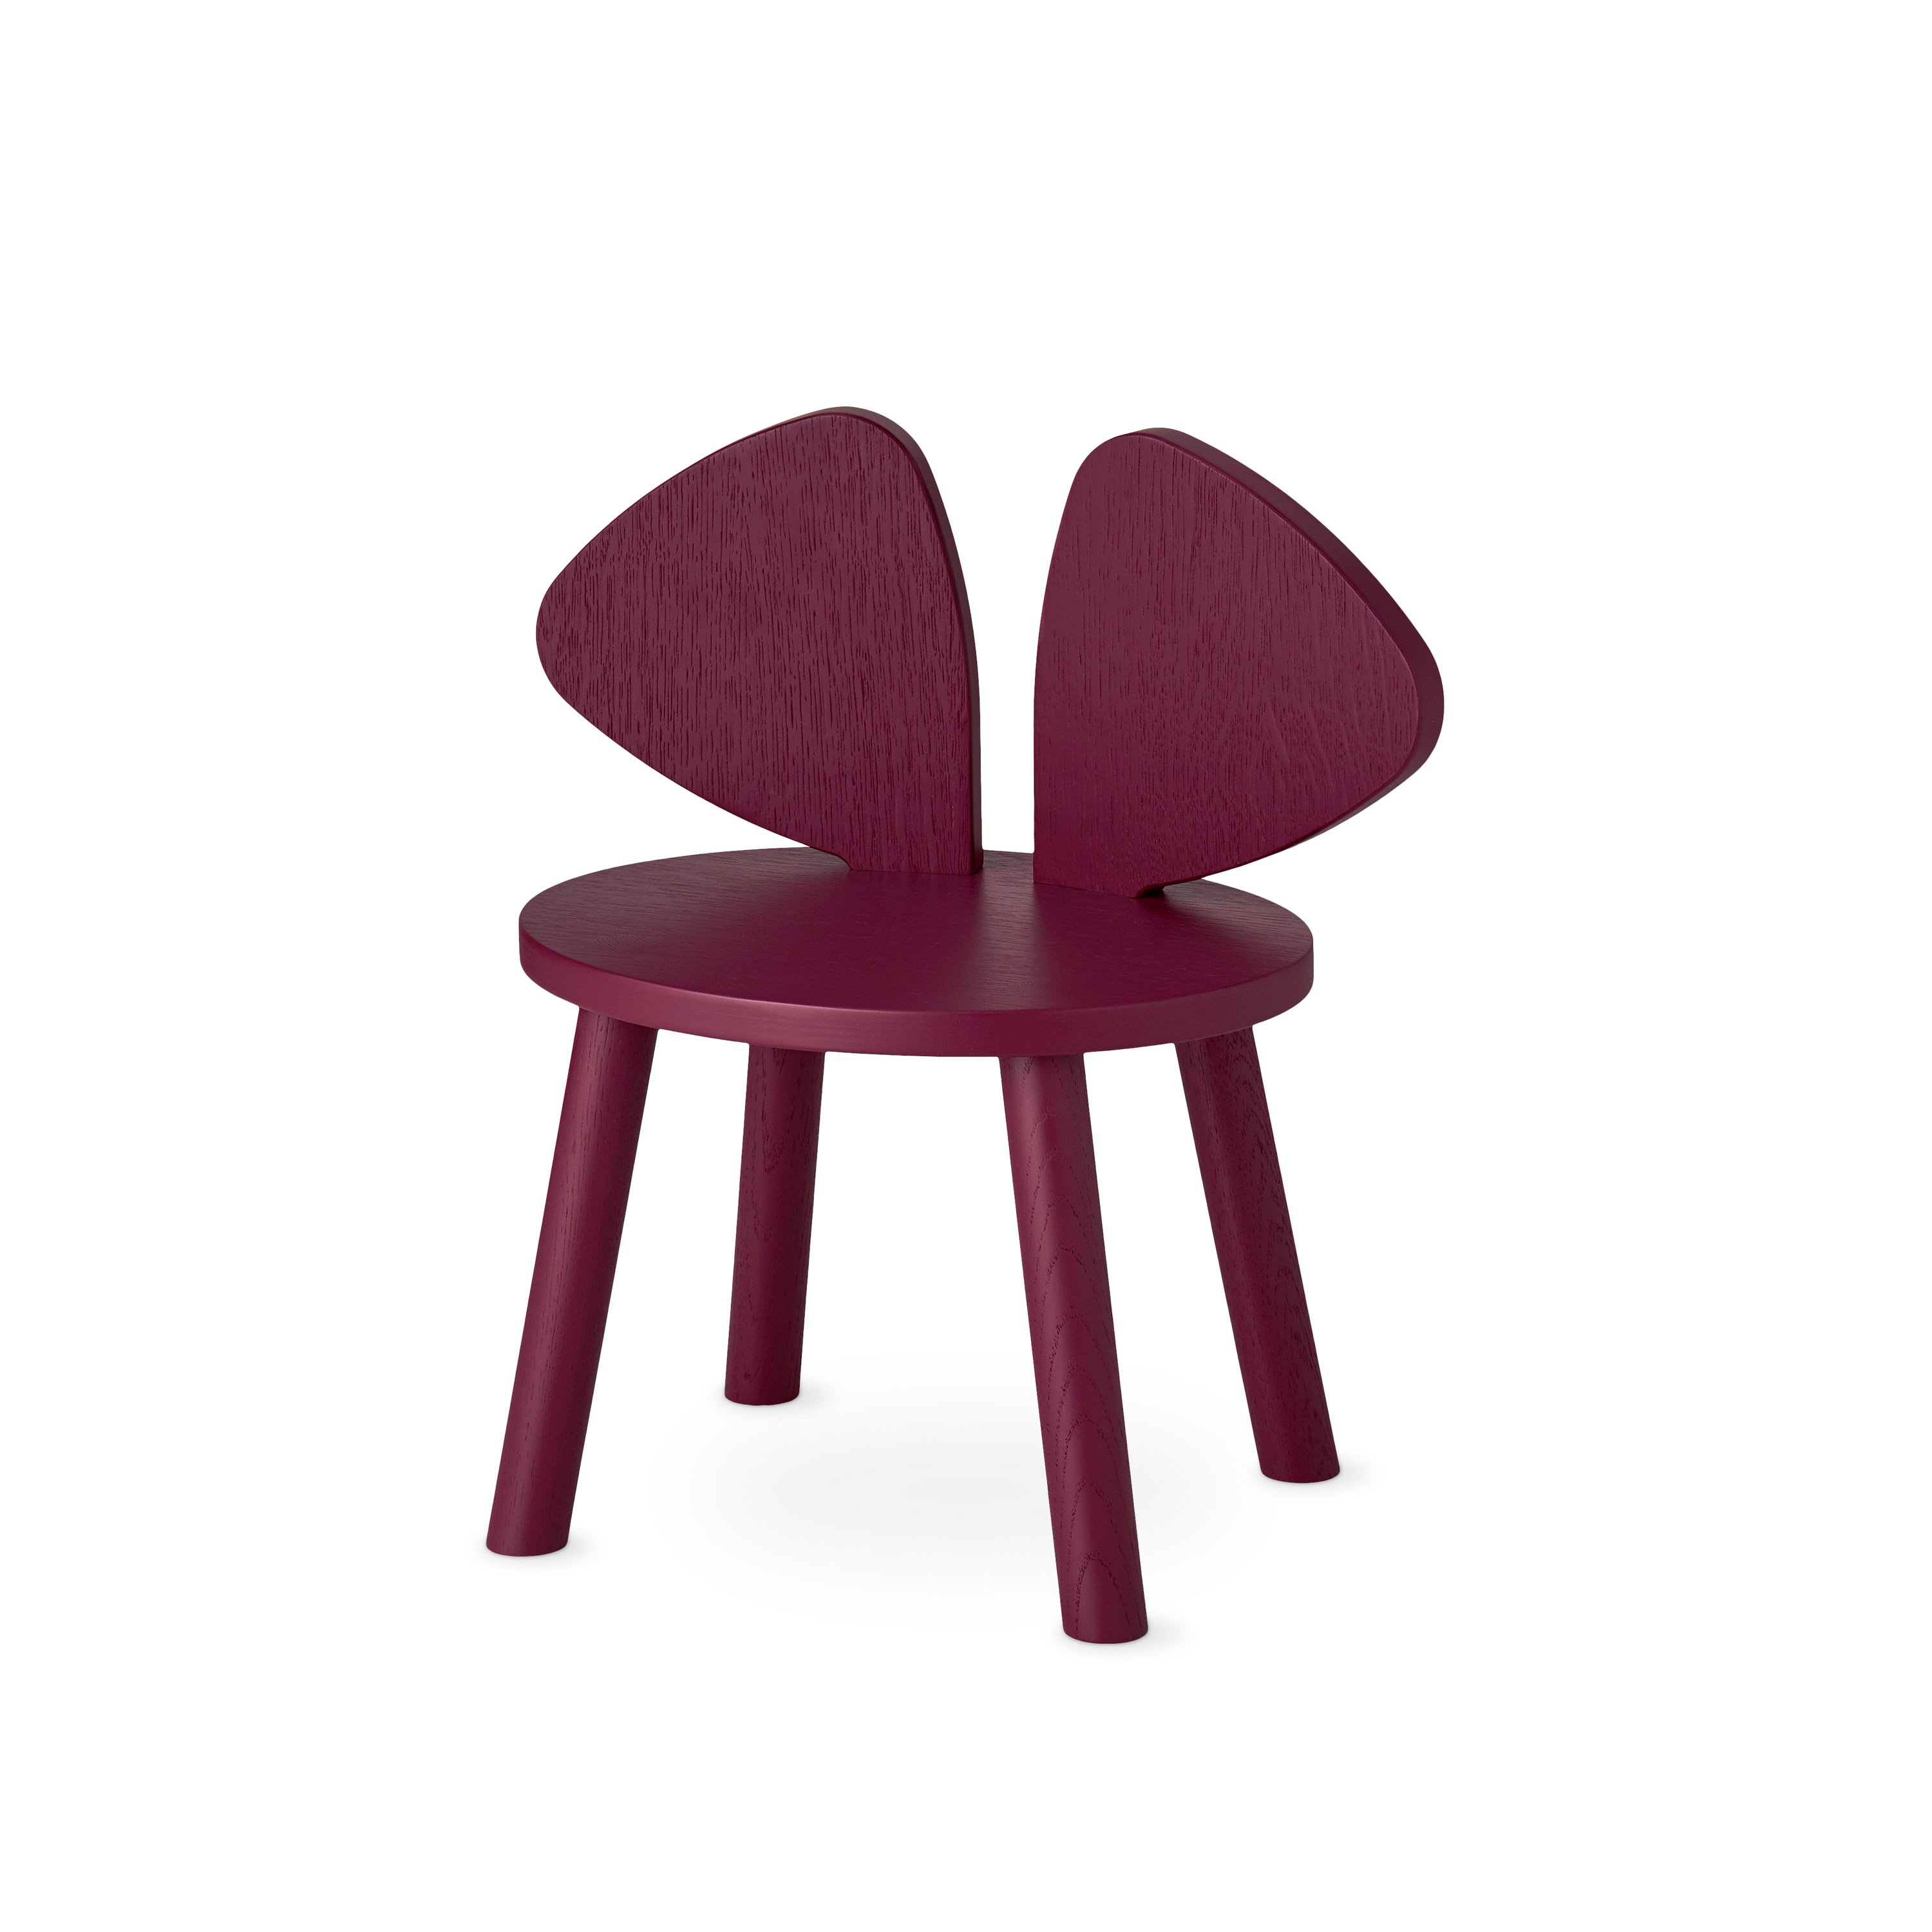 Nofred - Mouse Chair - Burgundy